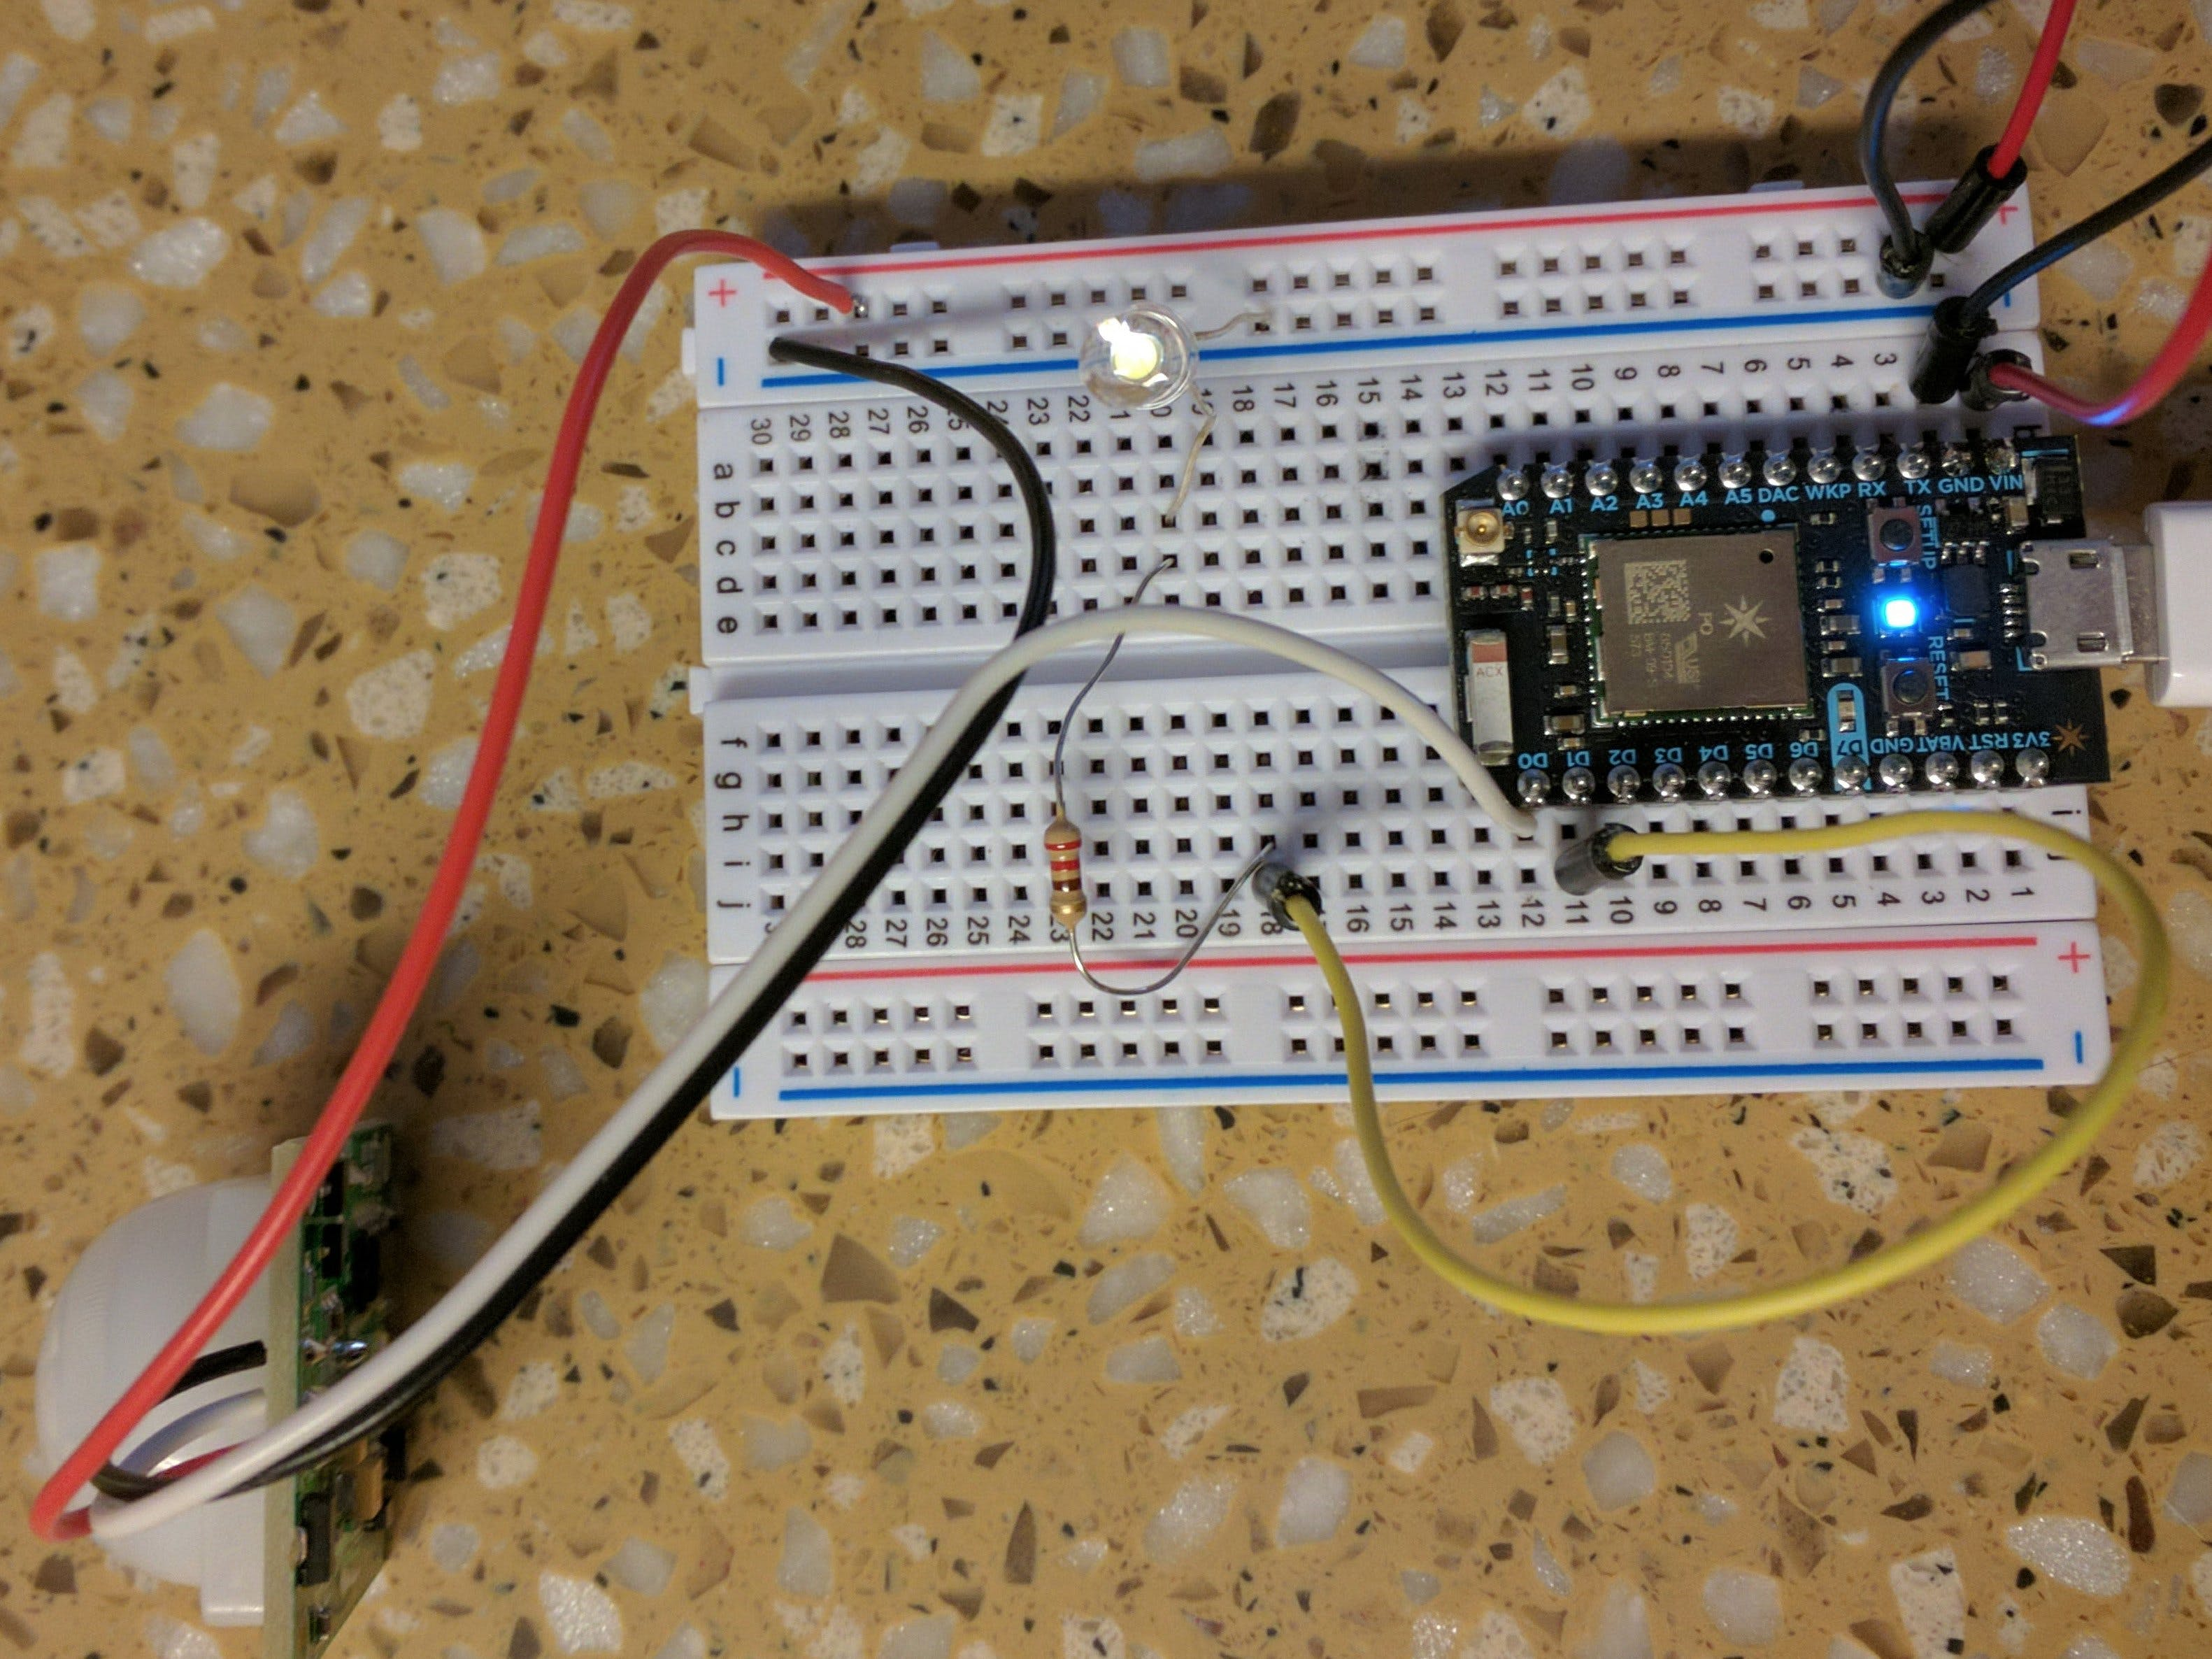 Particle Photon PIR Sensor and Event Reporting